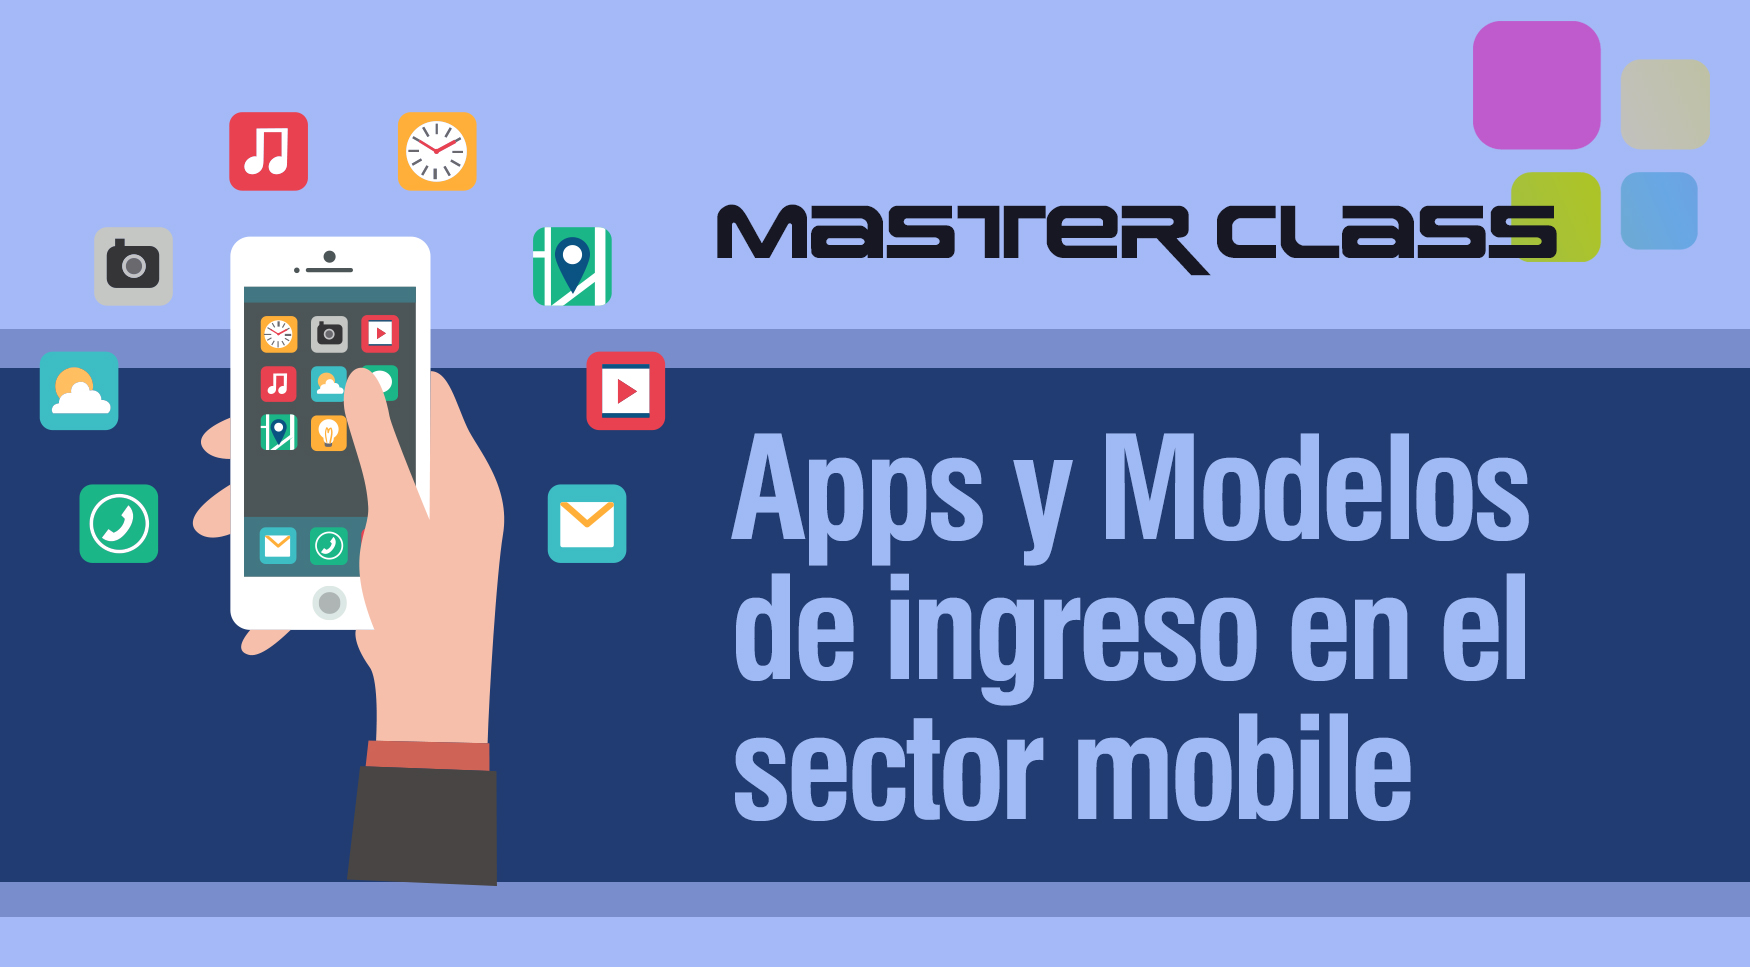 Master Class_Apps y Modelos sector mobile